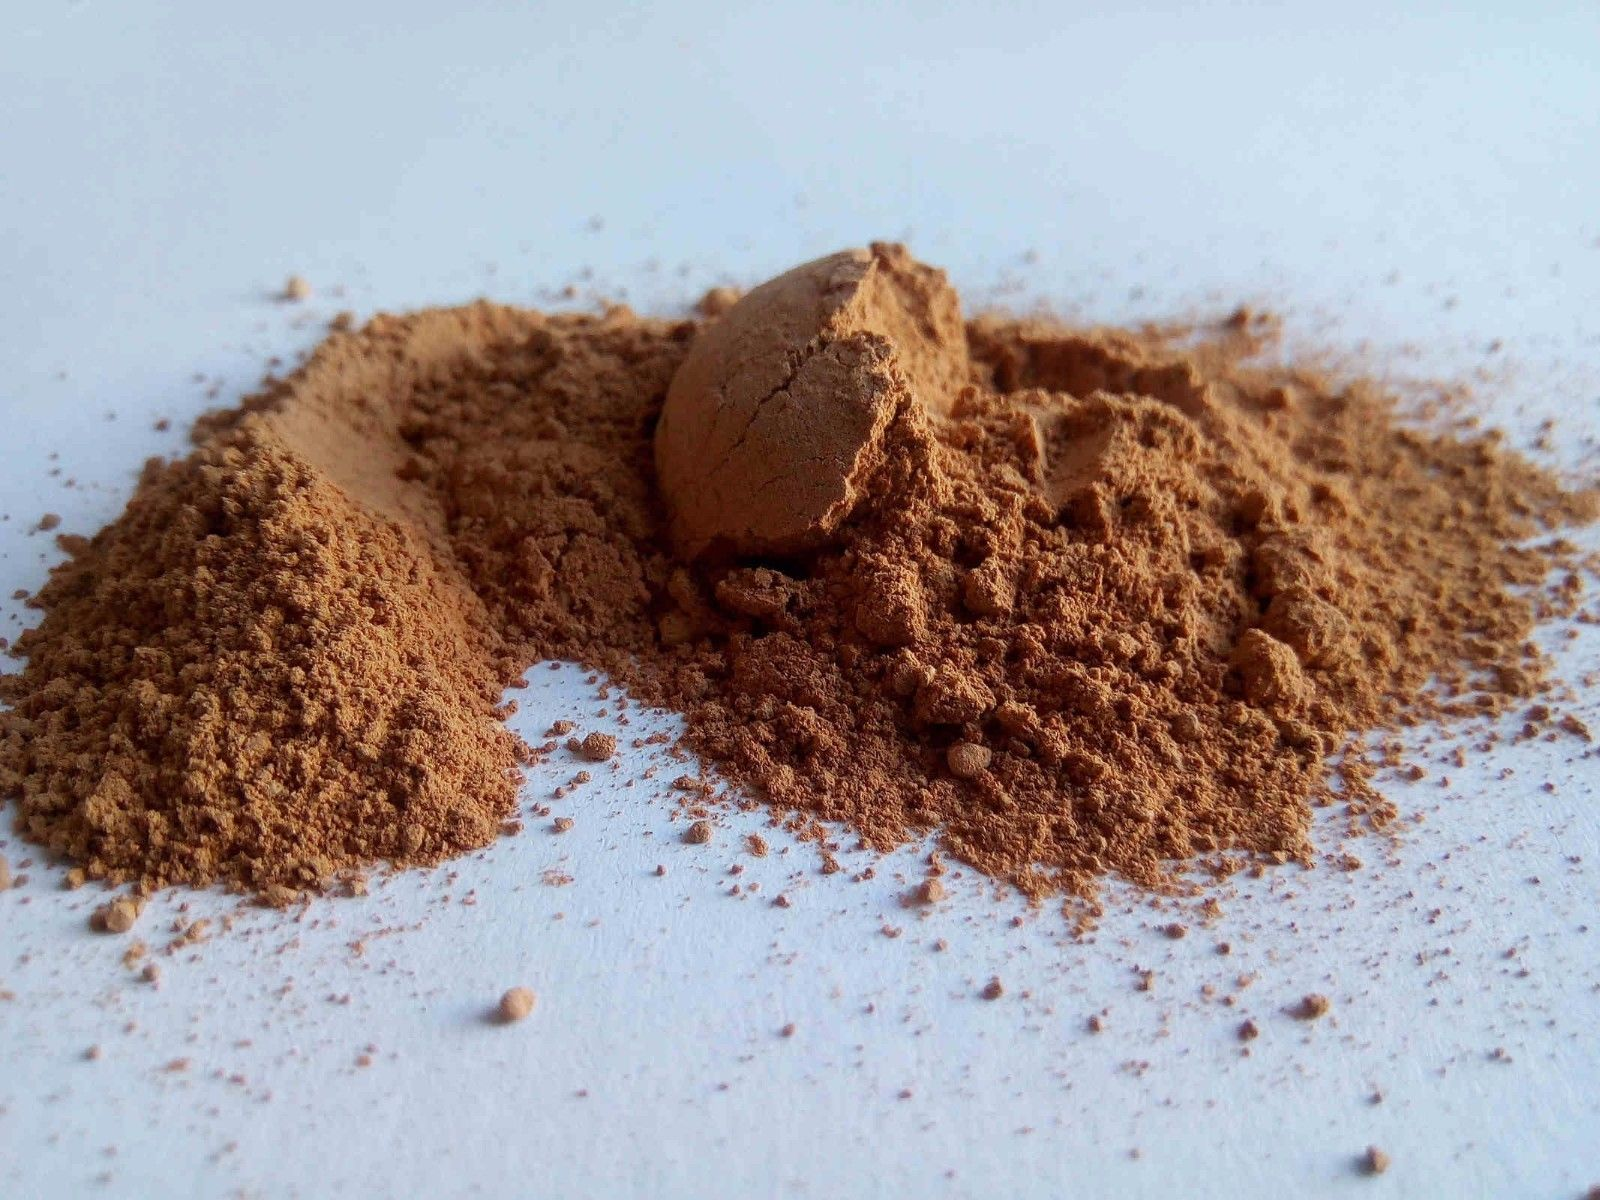 Rhassoul clay has benefits for both the skin and hair.